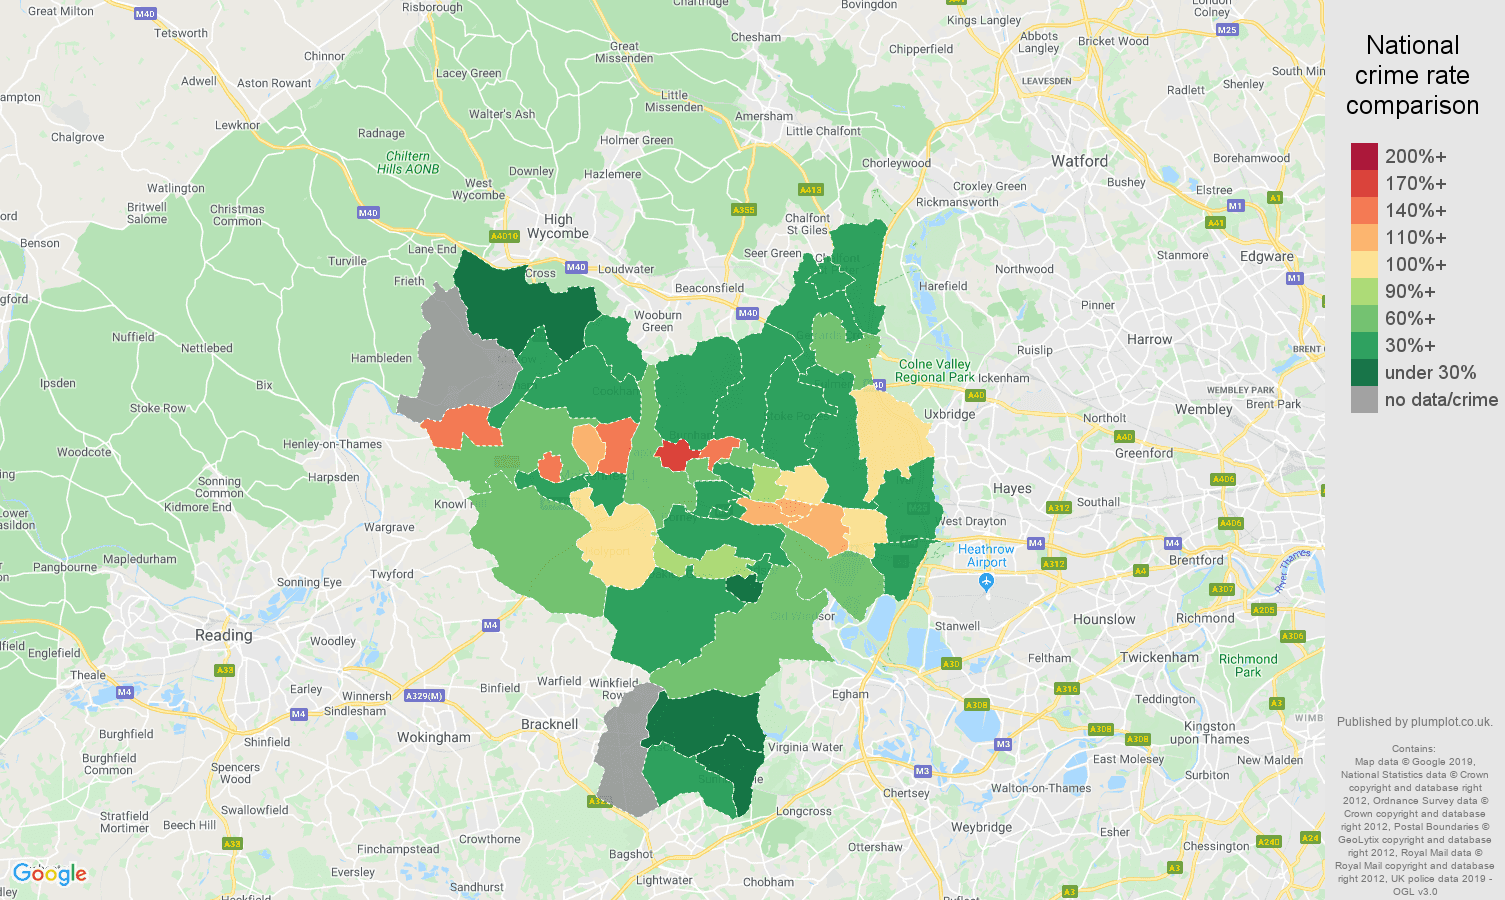 Slough other crime rate comparison map